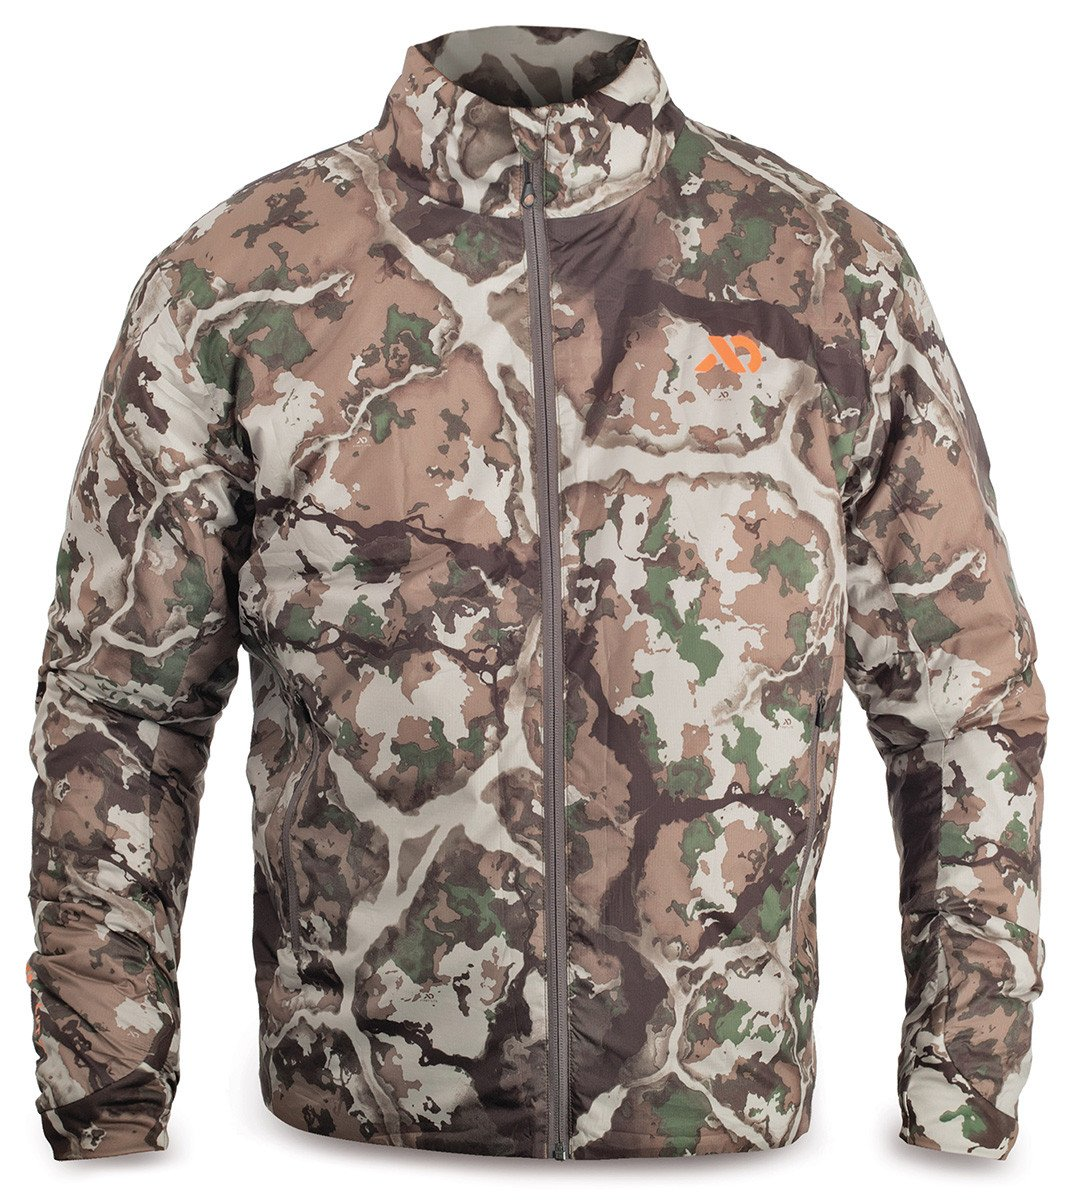 9c979744a49b6 Hunting Gear Deals- Links to the Best Prices on Discount Hunting ...